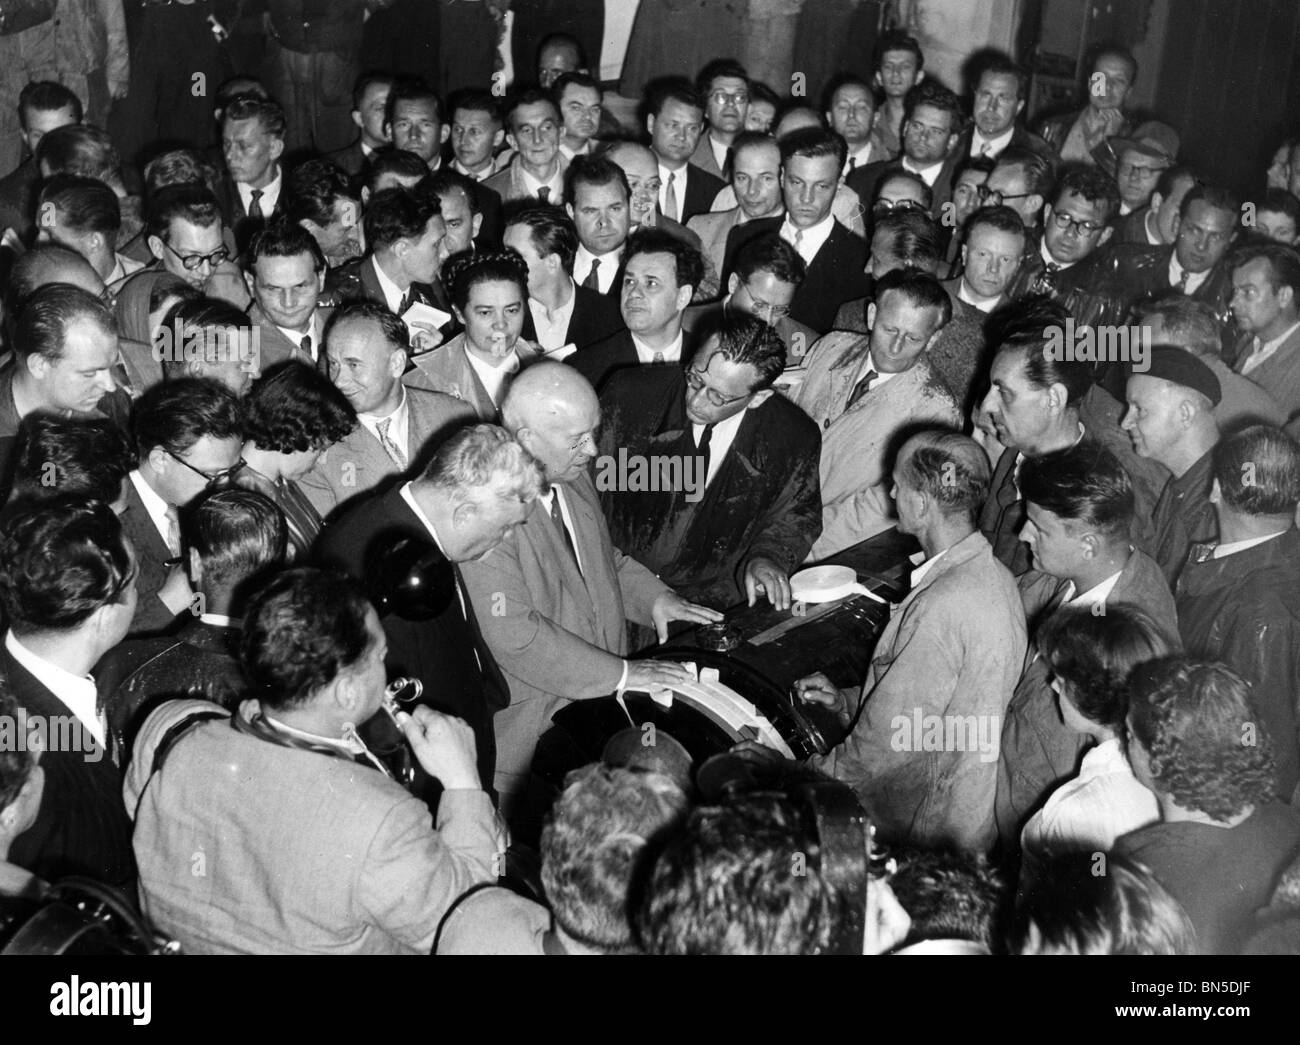 NIKITA KRUSHCHEV  (1894-1971) visiting an engineering factory in Czechoslovakia - Stock Image